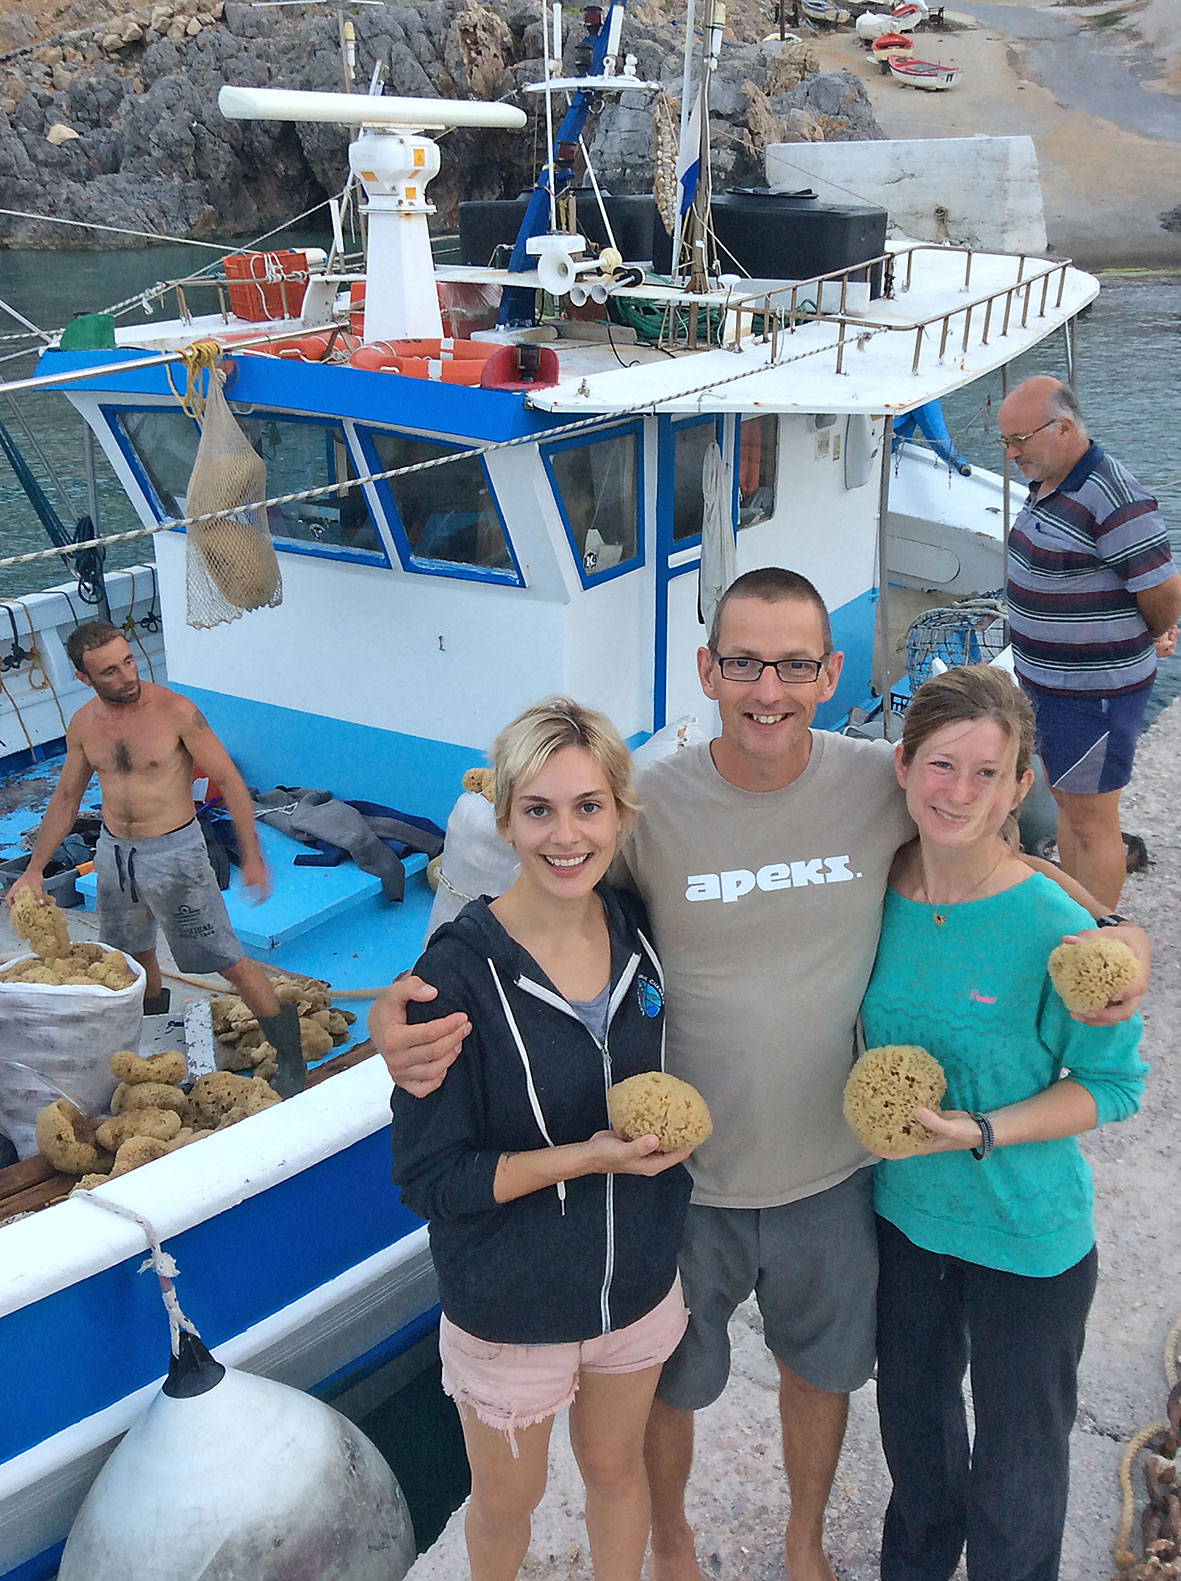 Gemma Smith, Phil Short & Jo Marchant had a great time talking to the sponge divers.